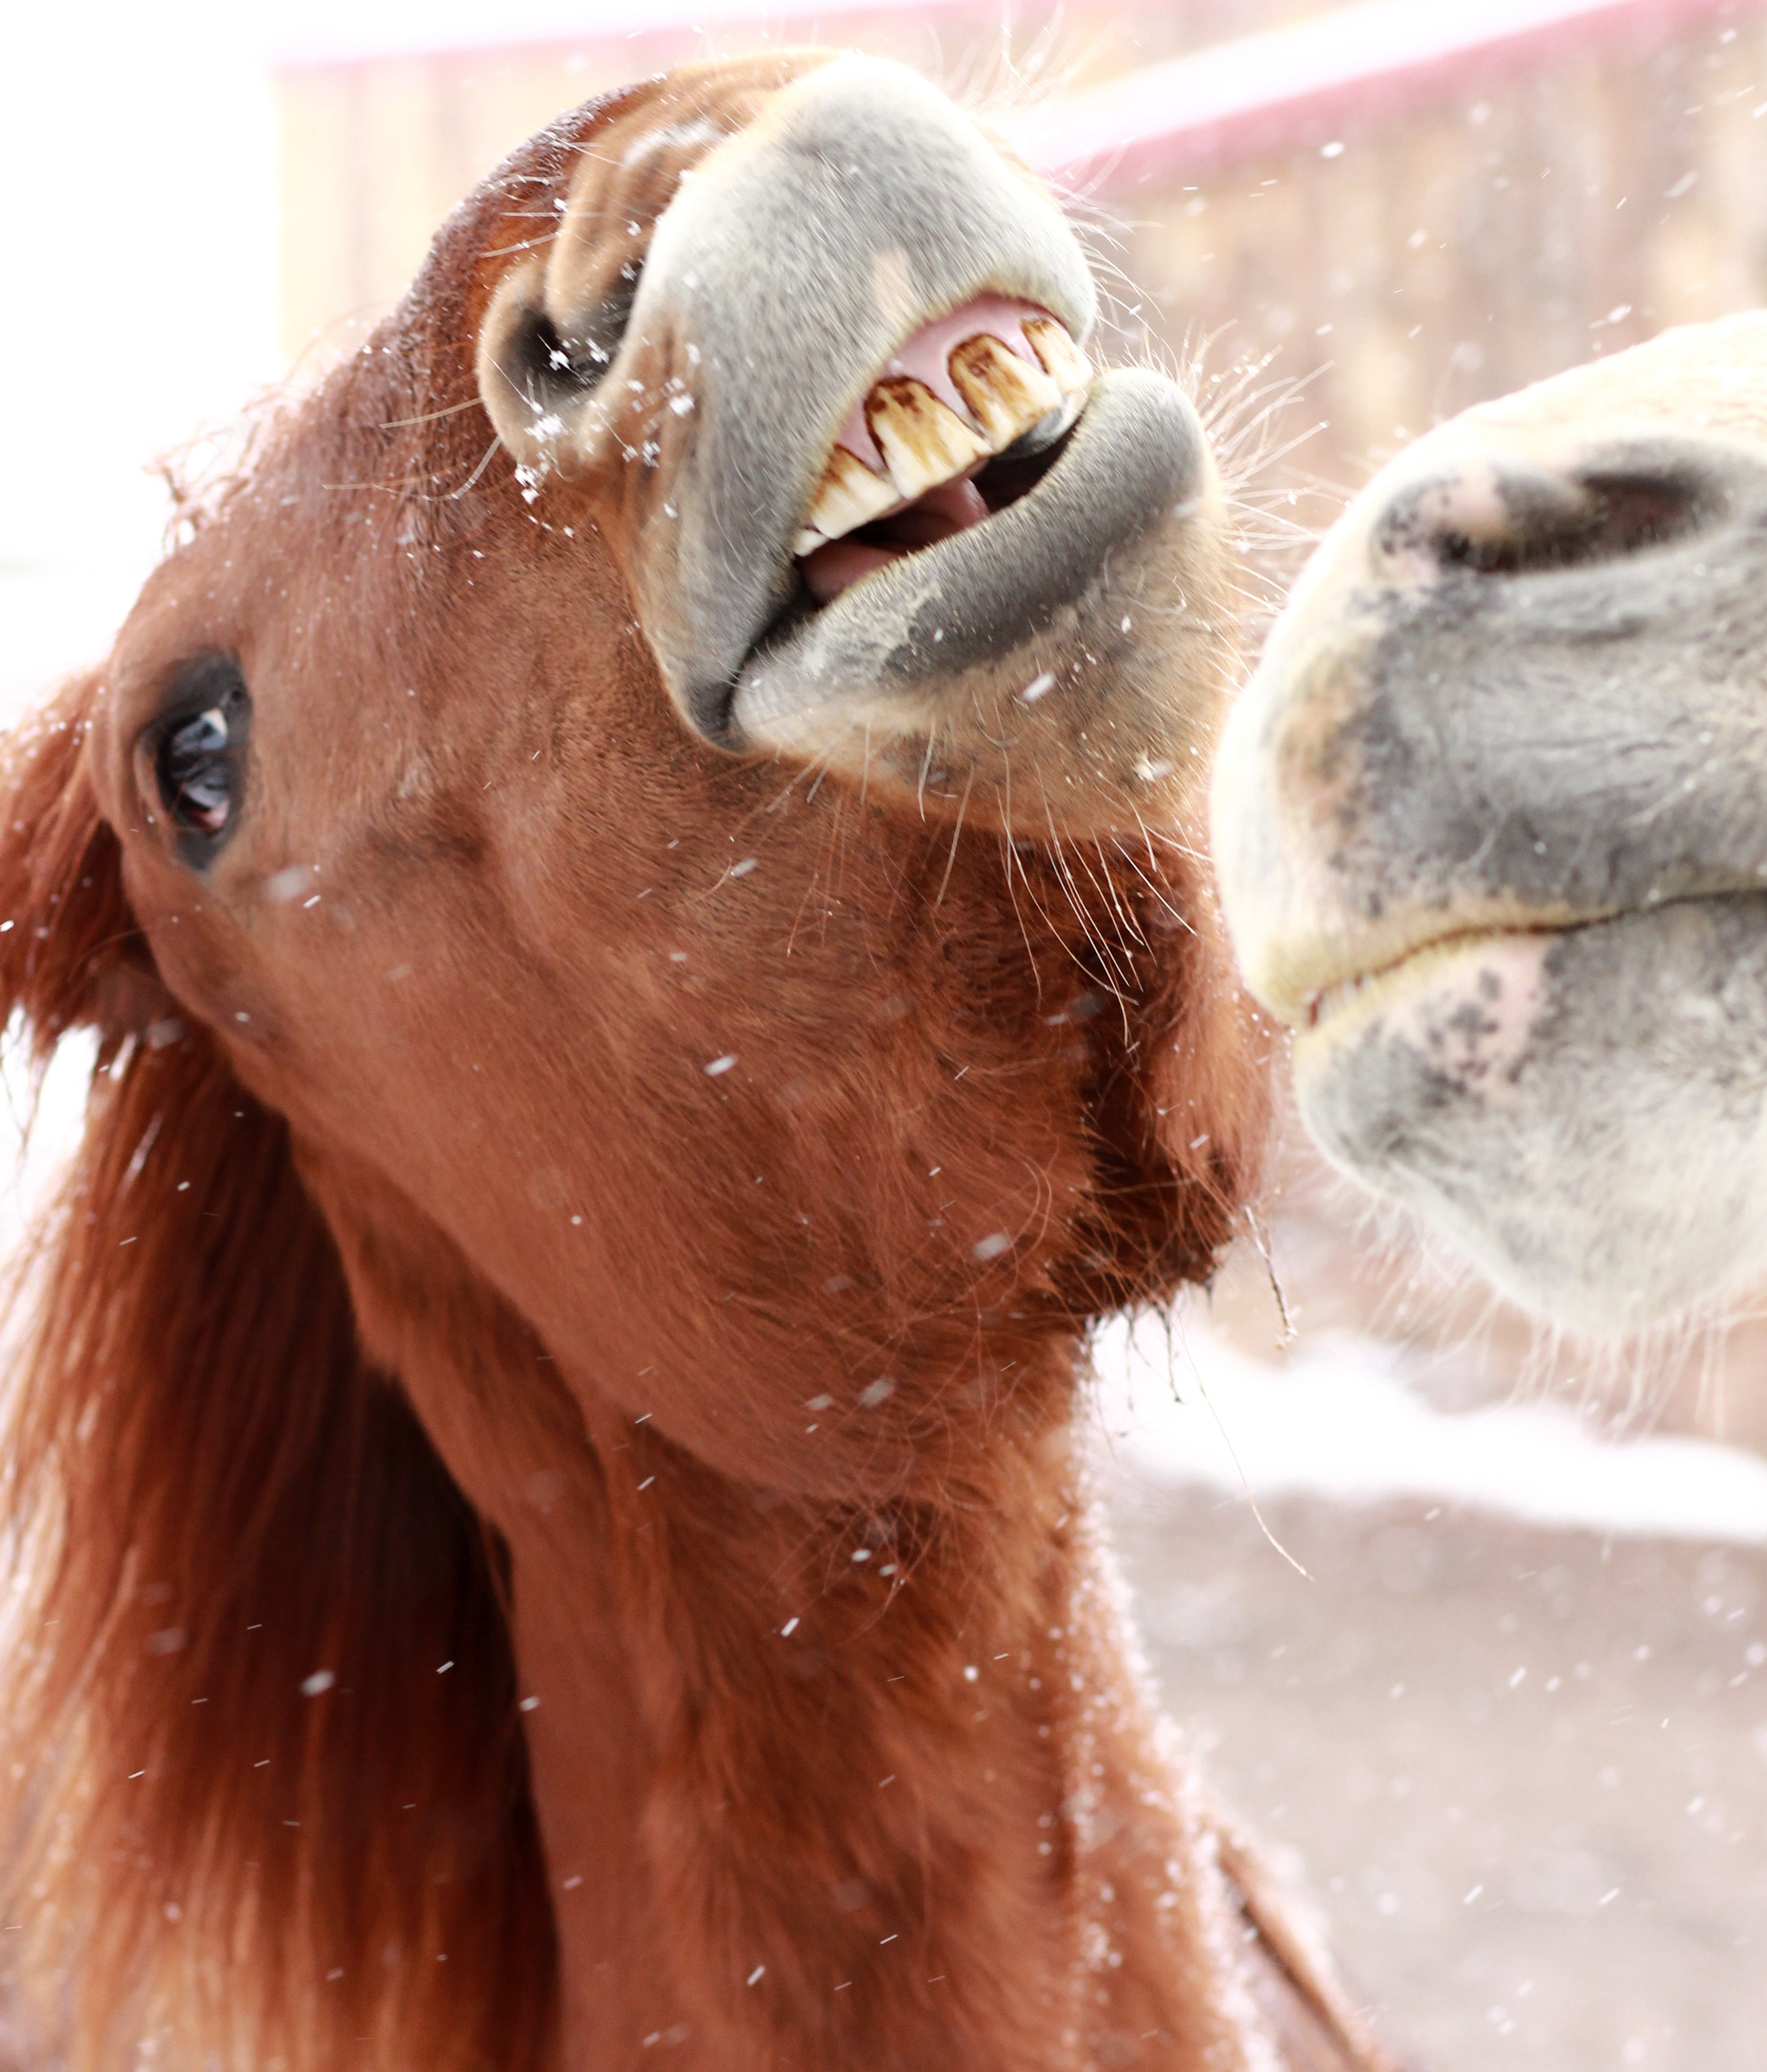 others are quite happy about having a snow day...